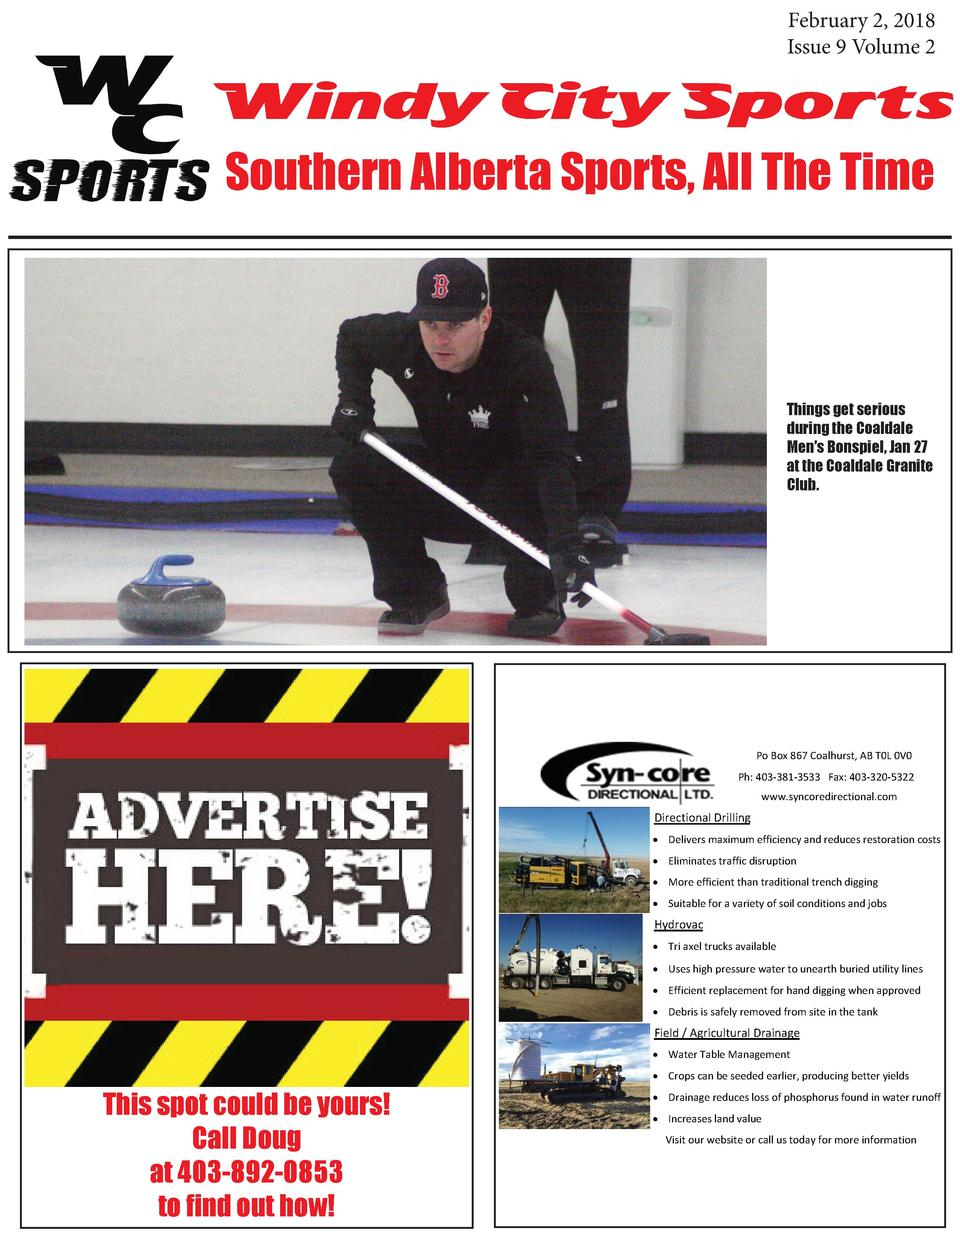 February 2, 2018 Issue 9 Volume 2  Windy City Sports Southern Alberta Sports, All The Time  Things get serious during the ...